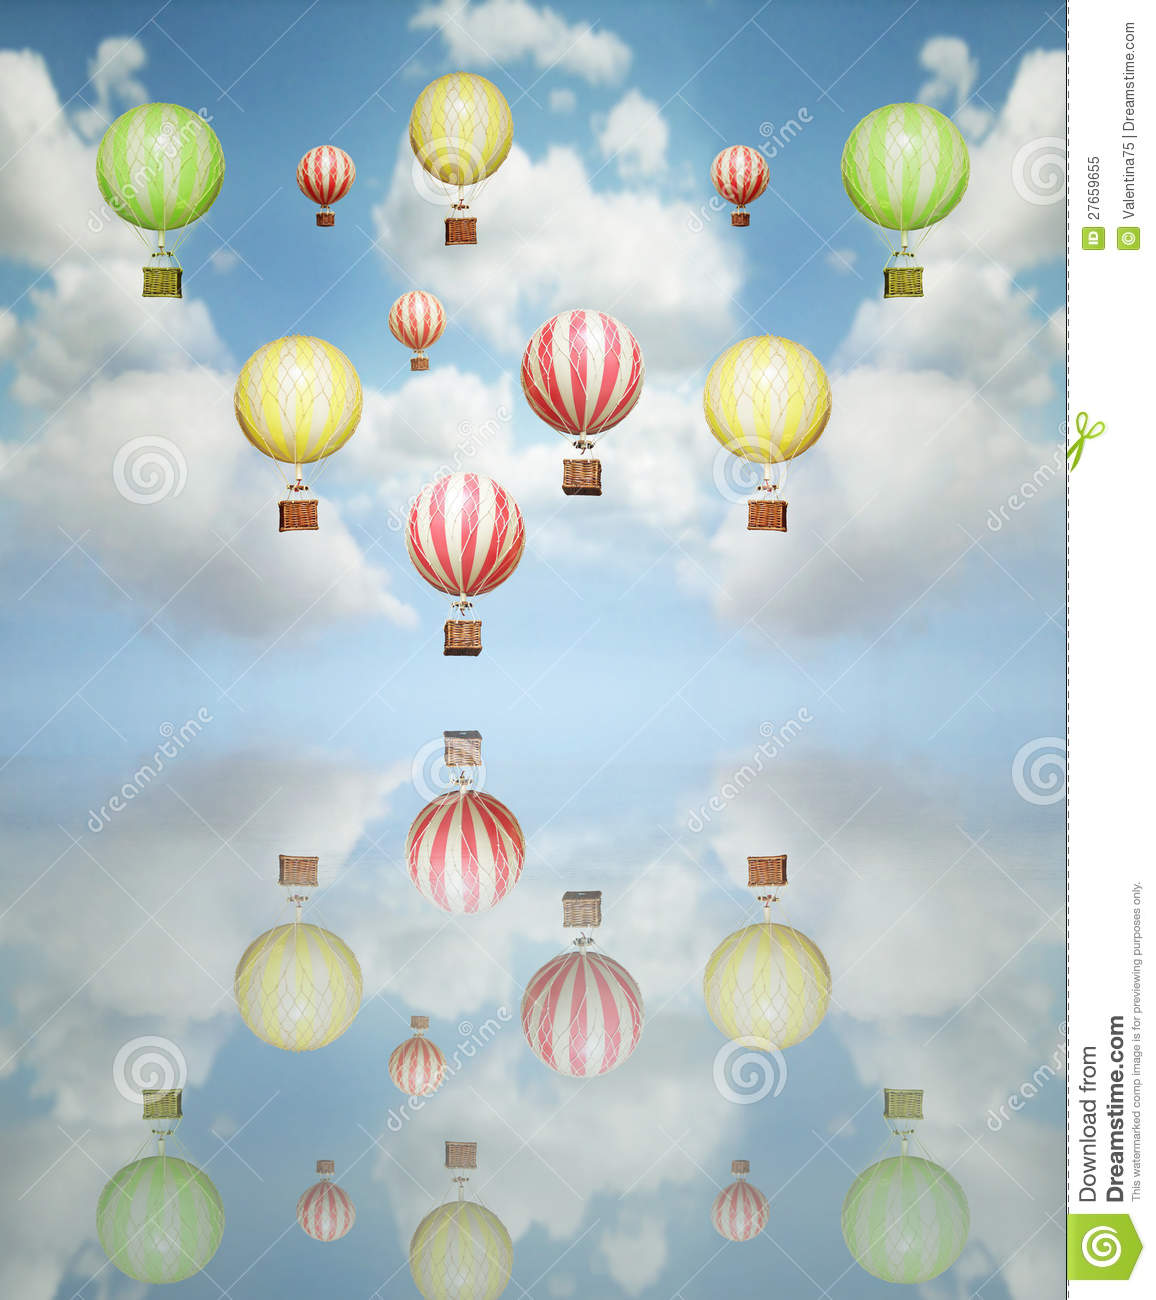 Many Beautiful Balloons In The Sky : ... many colorful hot air balloon in the sky with its reflection above